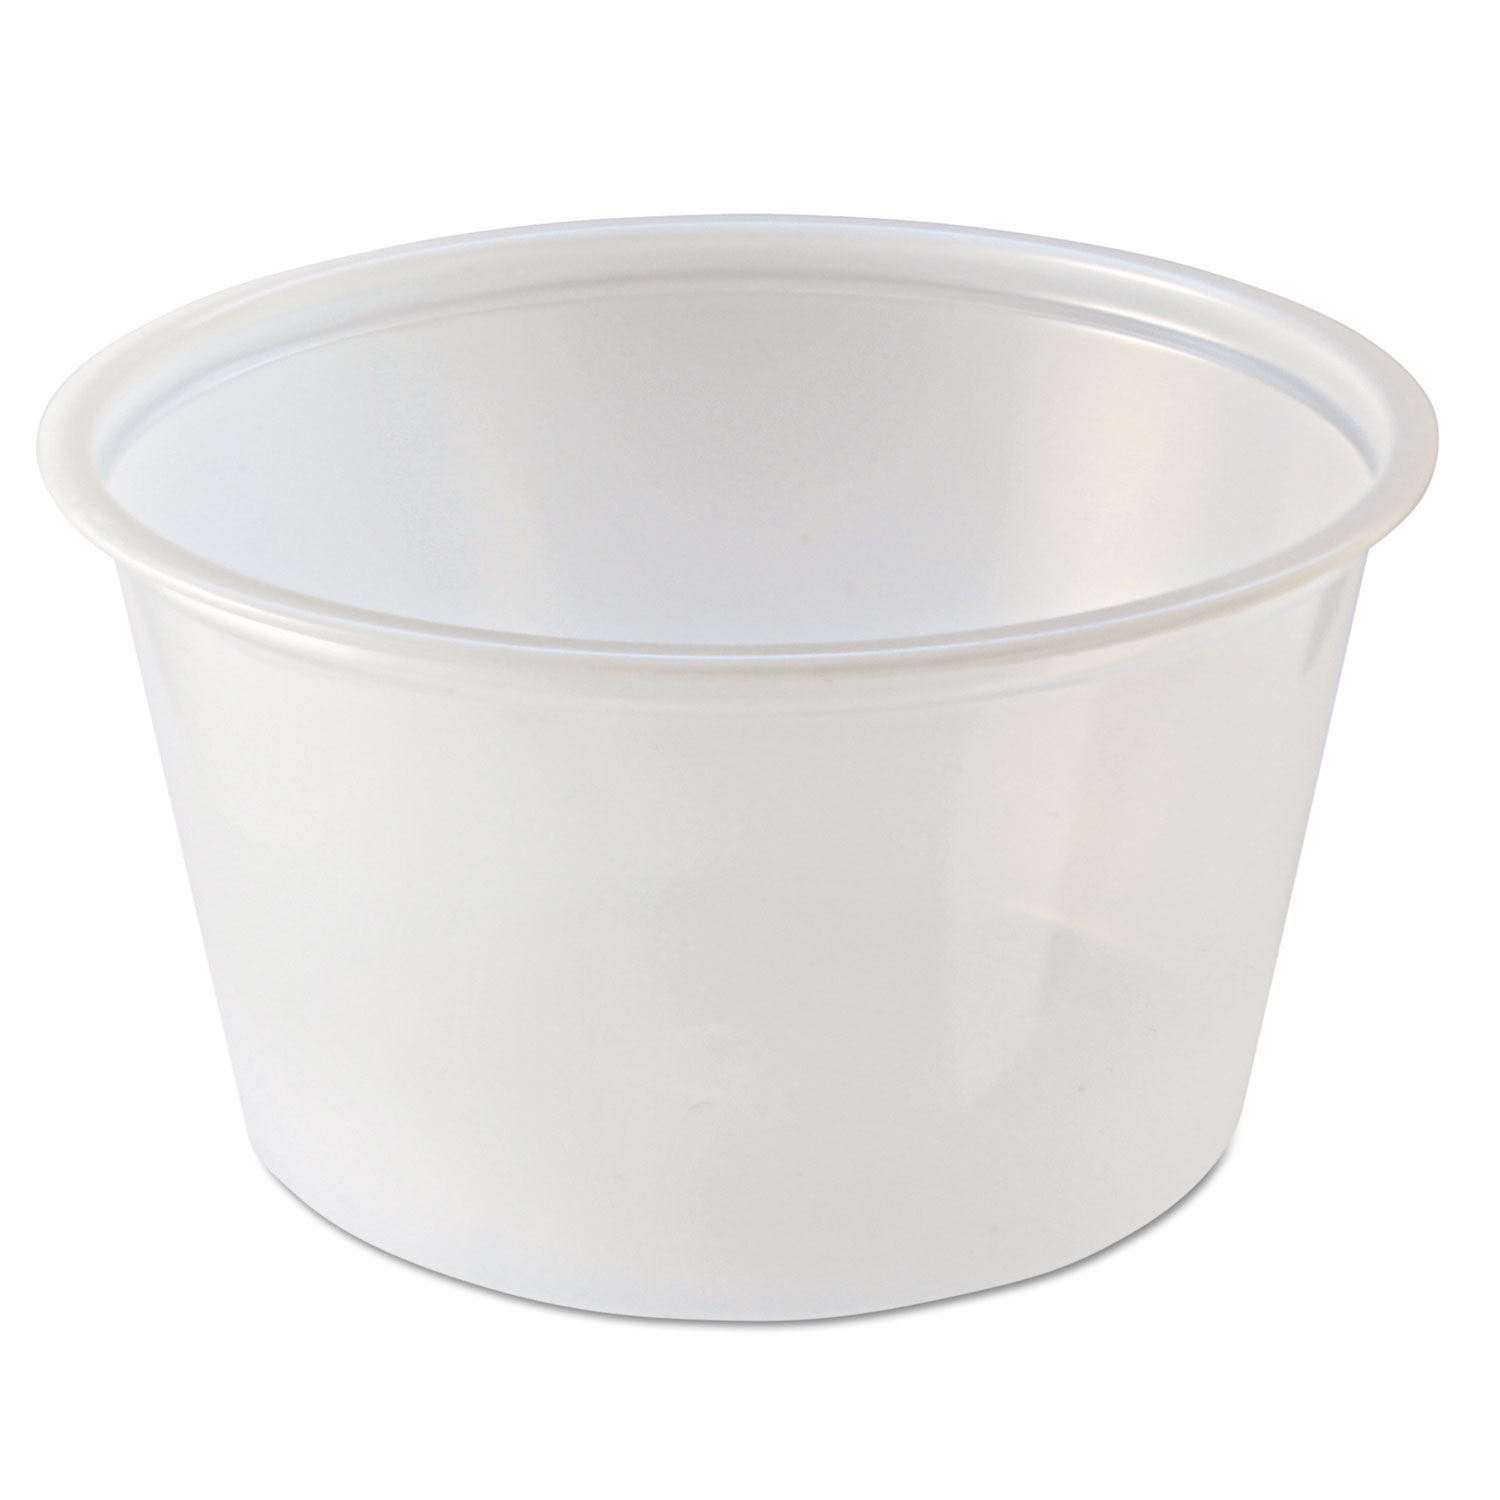 Portion Cups, 4oz, Clear, 125/Sleeve, 20 Sleeves/Carton